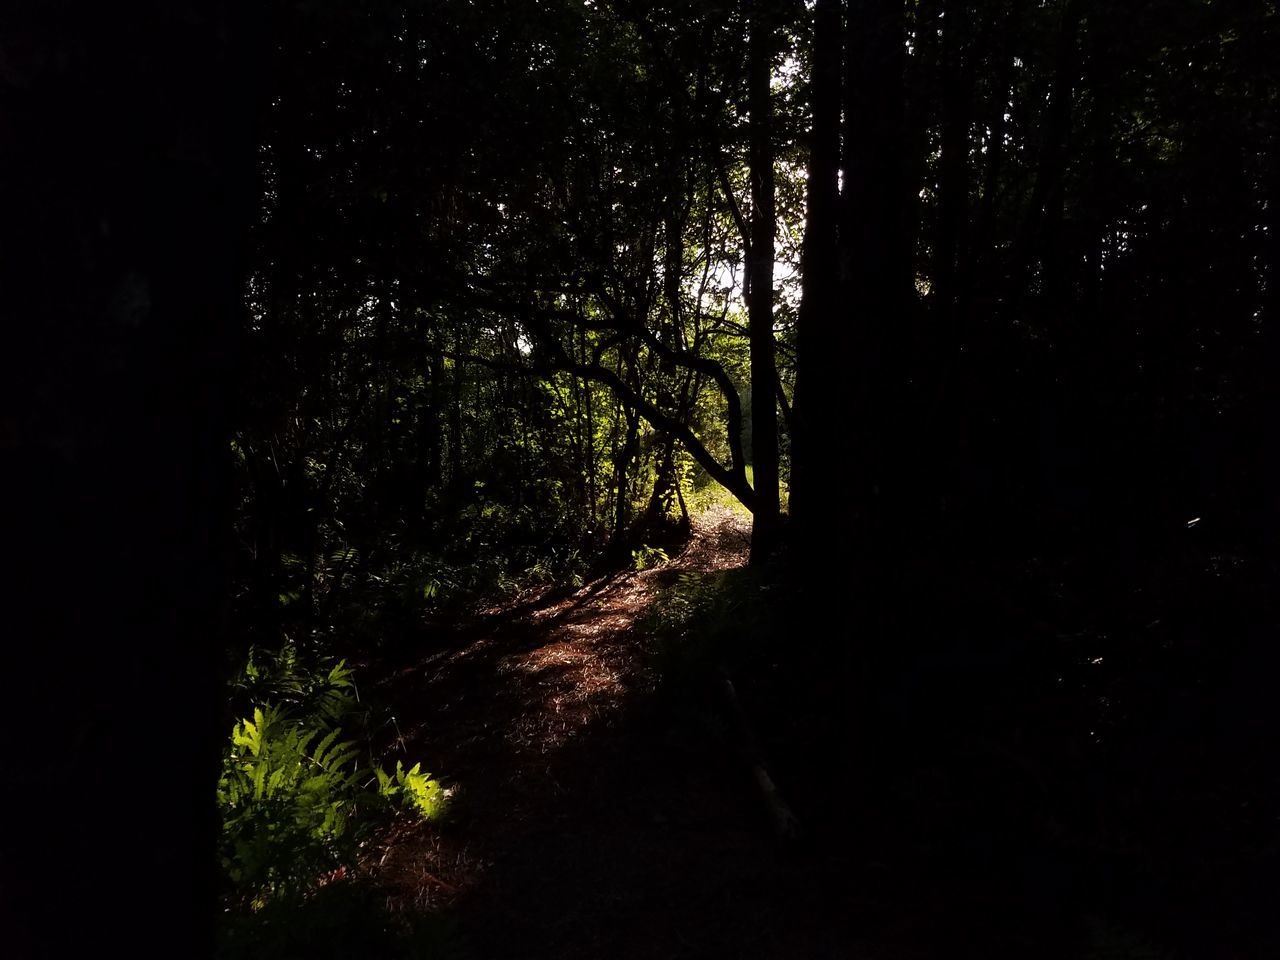 Follow the light. PhotographybyTripp Smartphone Photography Phoneography Samsung Galaxy Note 7 EyeEm Nature Lover EyeEm Gallery Forest Tree Nature WoodLand Camera360 Pixlr Beastgrip Pro Natural Light Light And Shadow No Edits No Filters Creative Shots Creative Photography Creative Light And Shadow Unique Photography Unique Perspectives EyeEm Gallery Nature_collection Treetastic My Style